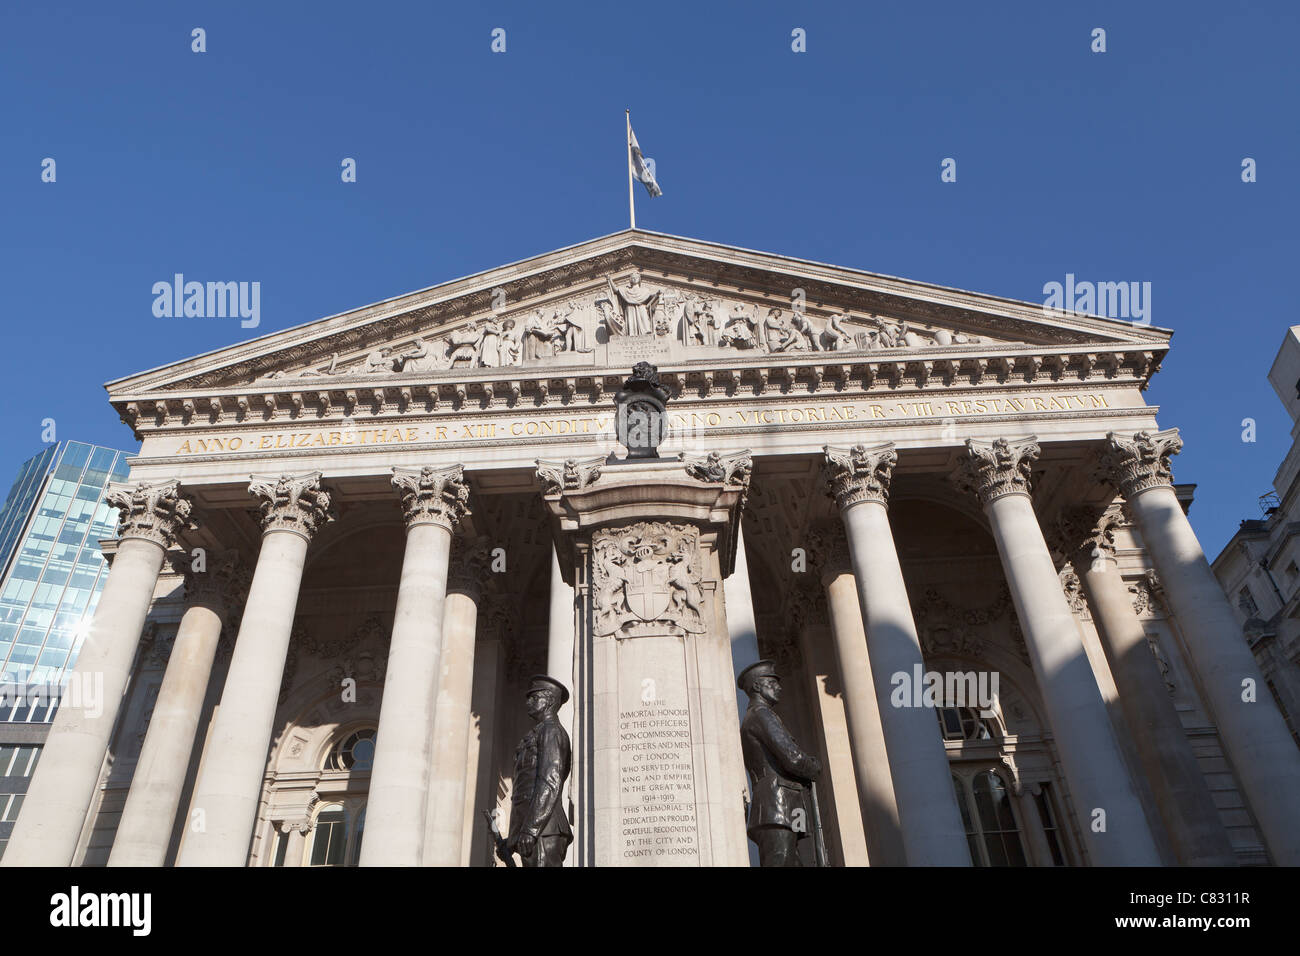 The Royal Exchange in the City of London, England - Stock Image